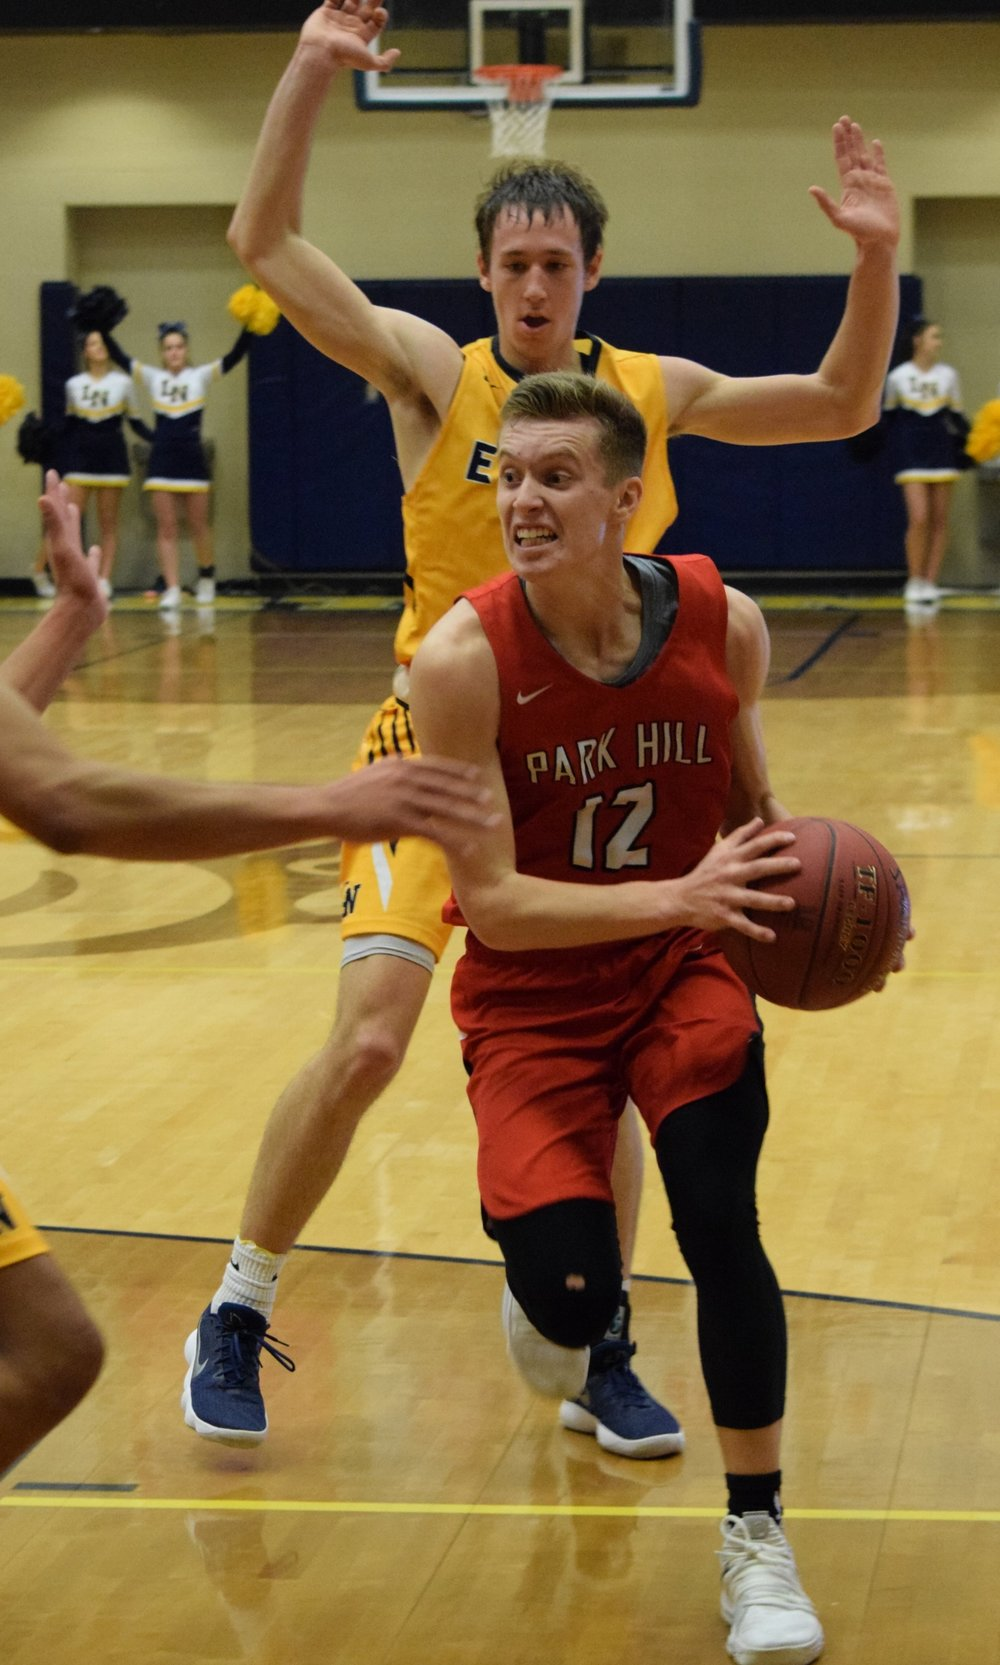 BRYCE MERENESS/Special to The Citizen LEFT: Park Hill junior Ryan Graves (12) drives to his left toward the basket against Liberty North on Friday, Dec. 8 in Liberty, Mo.